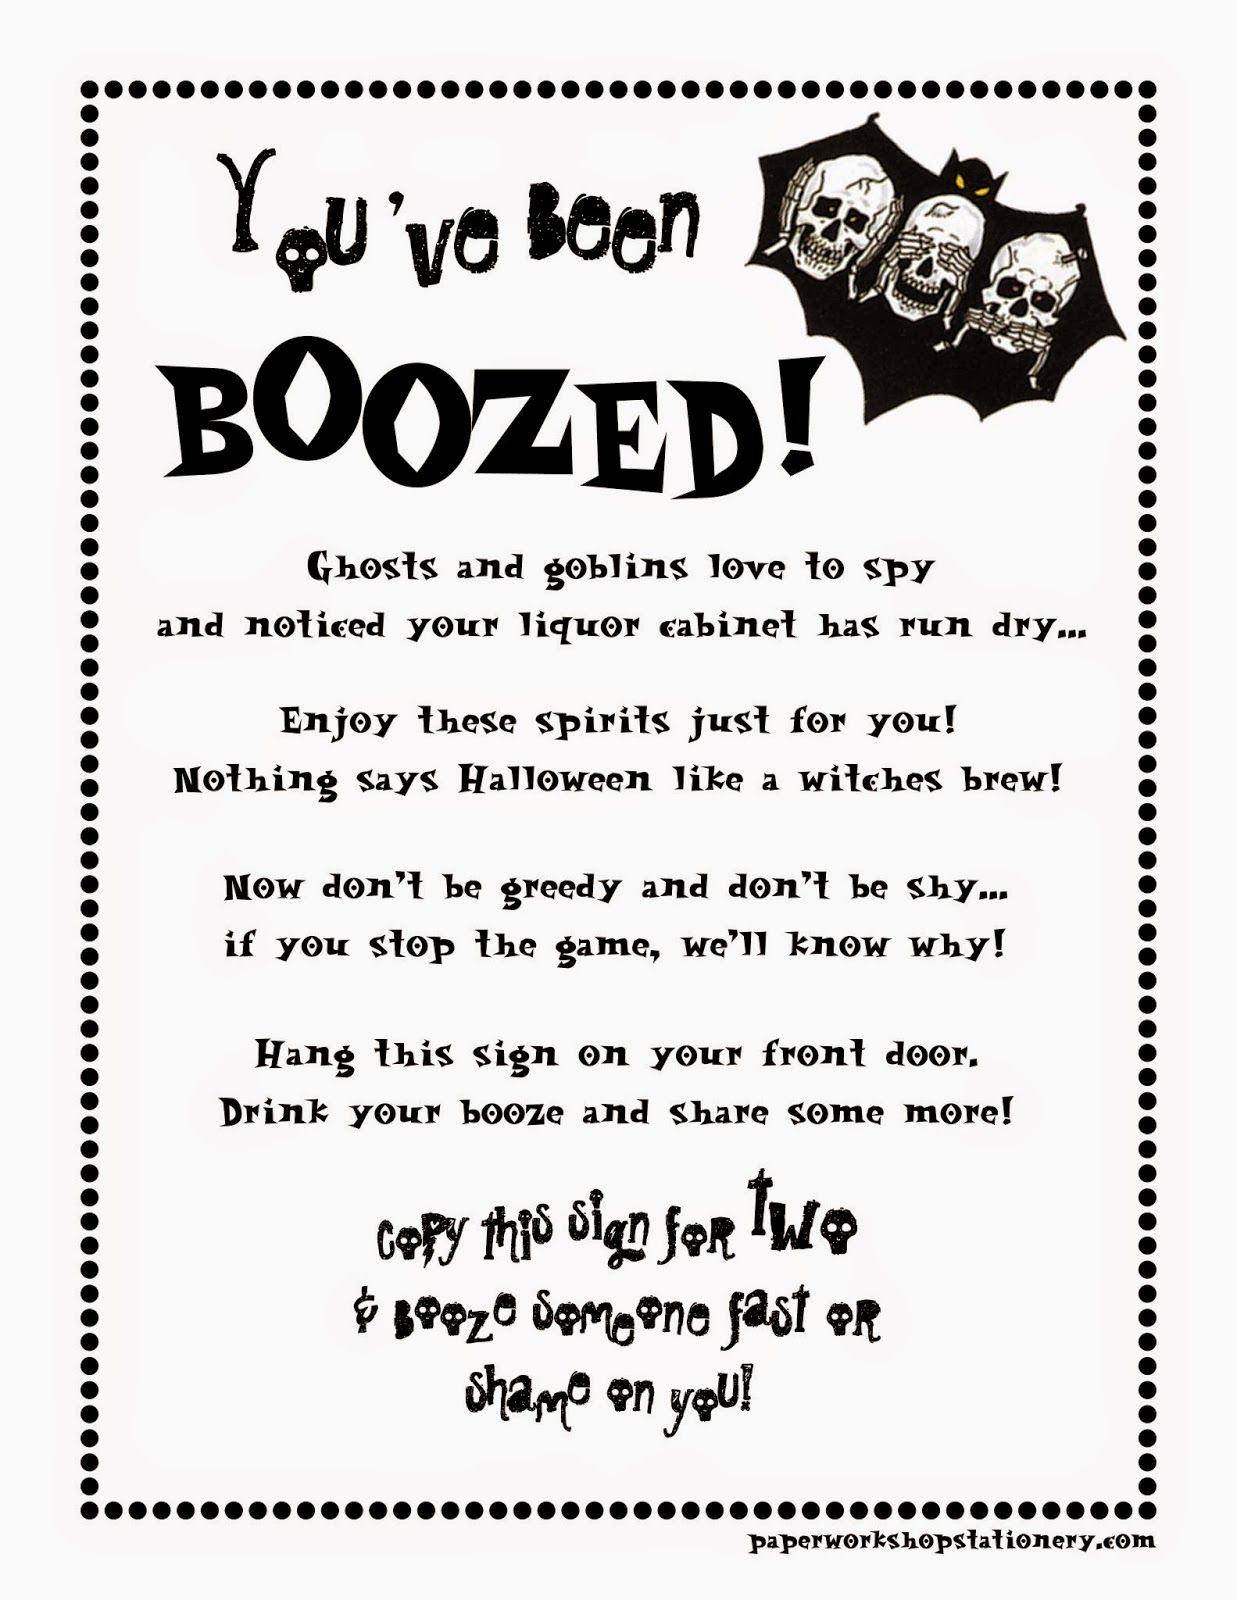 photo about You've Been Boozed Printable named Youve been Boozed! Paperworkshop within just 2019 Halloween 2014